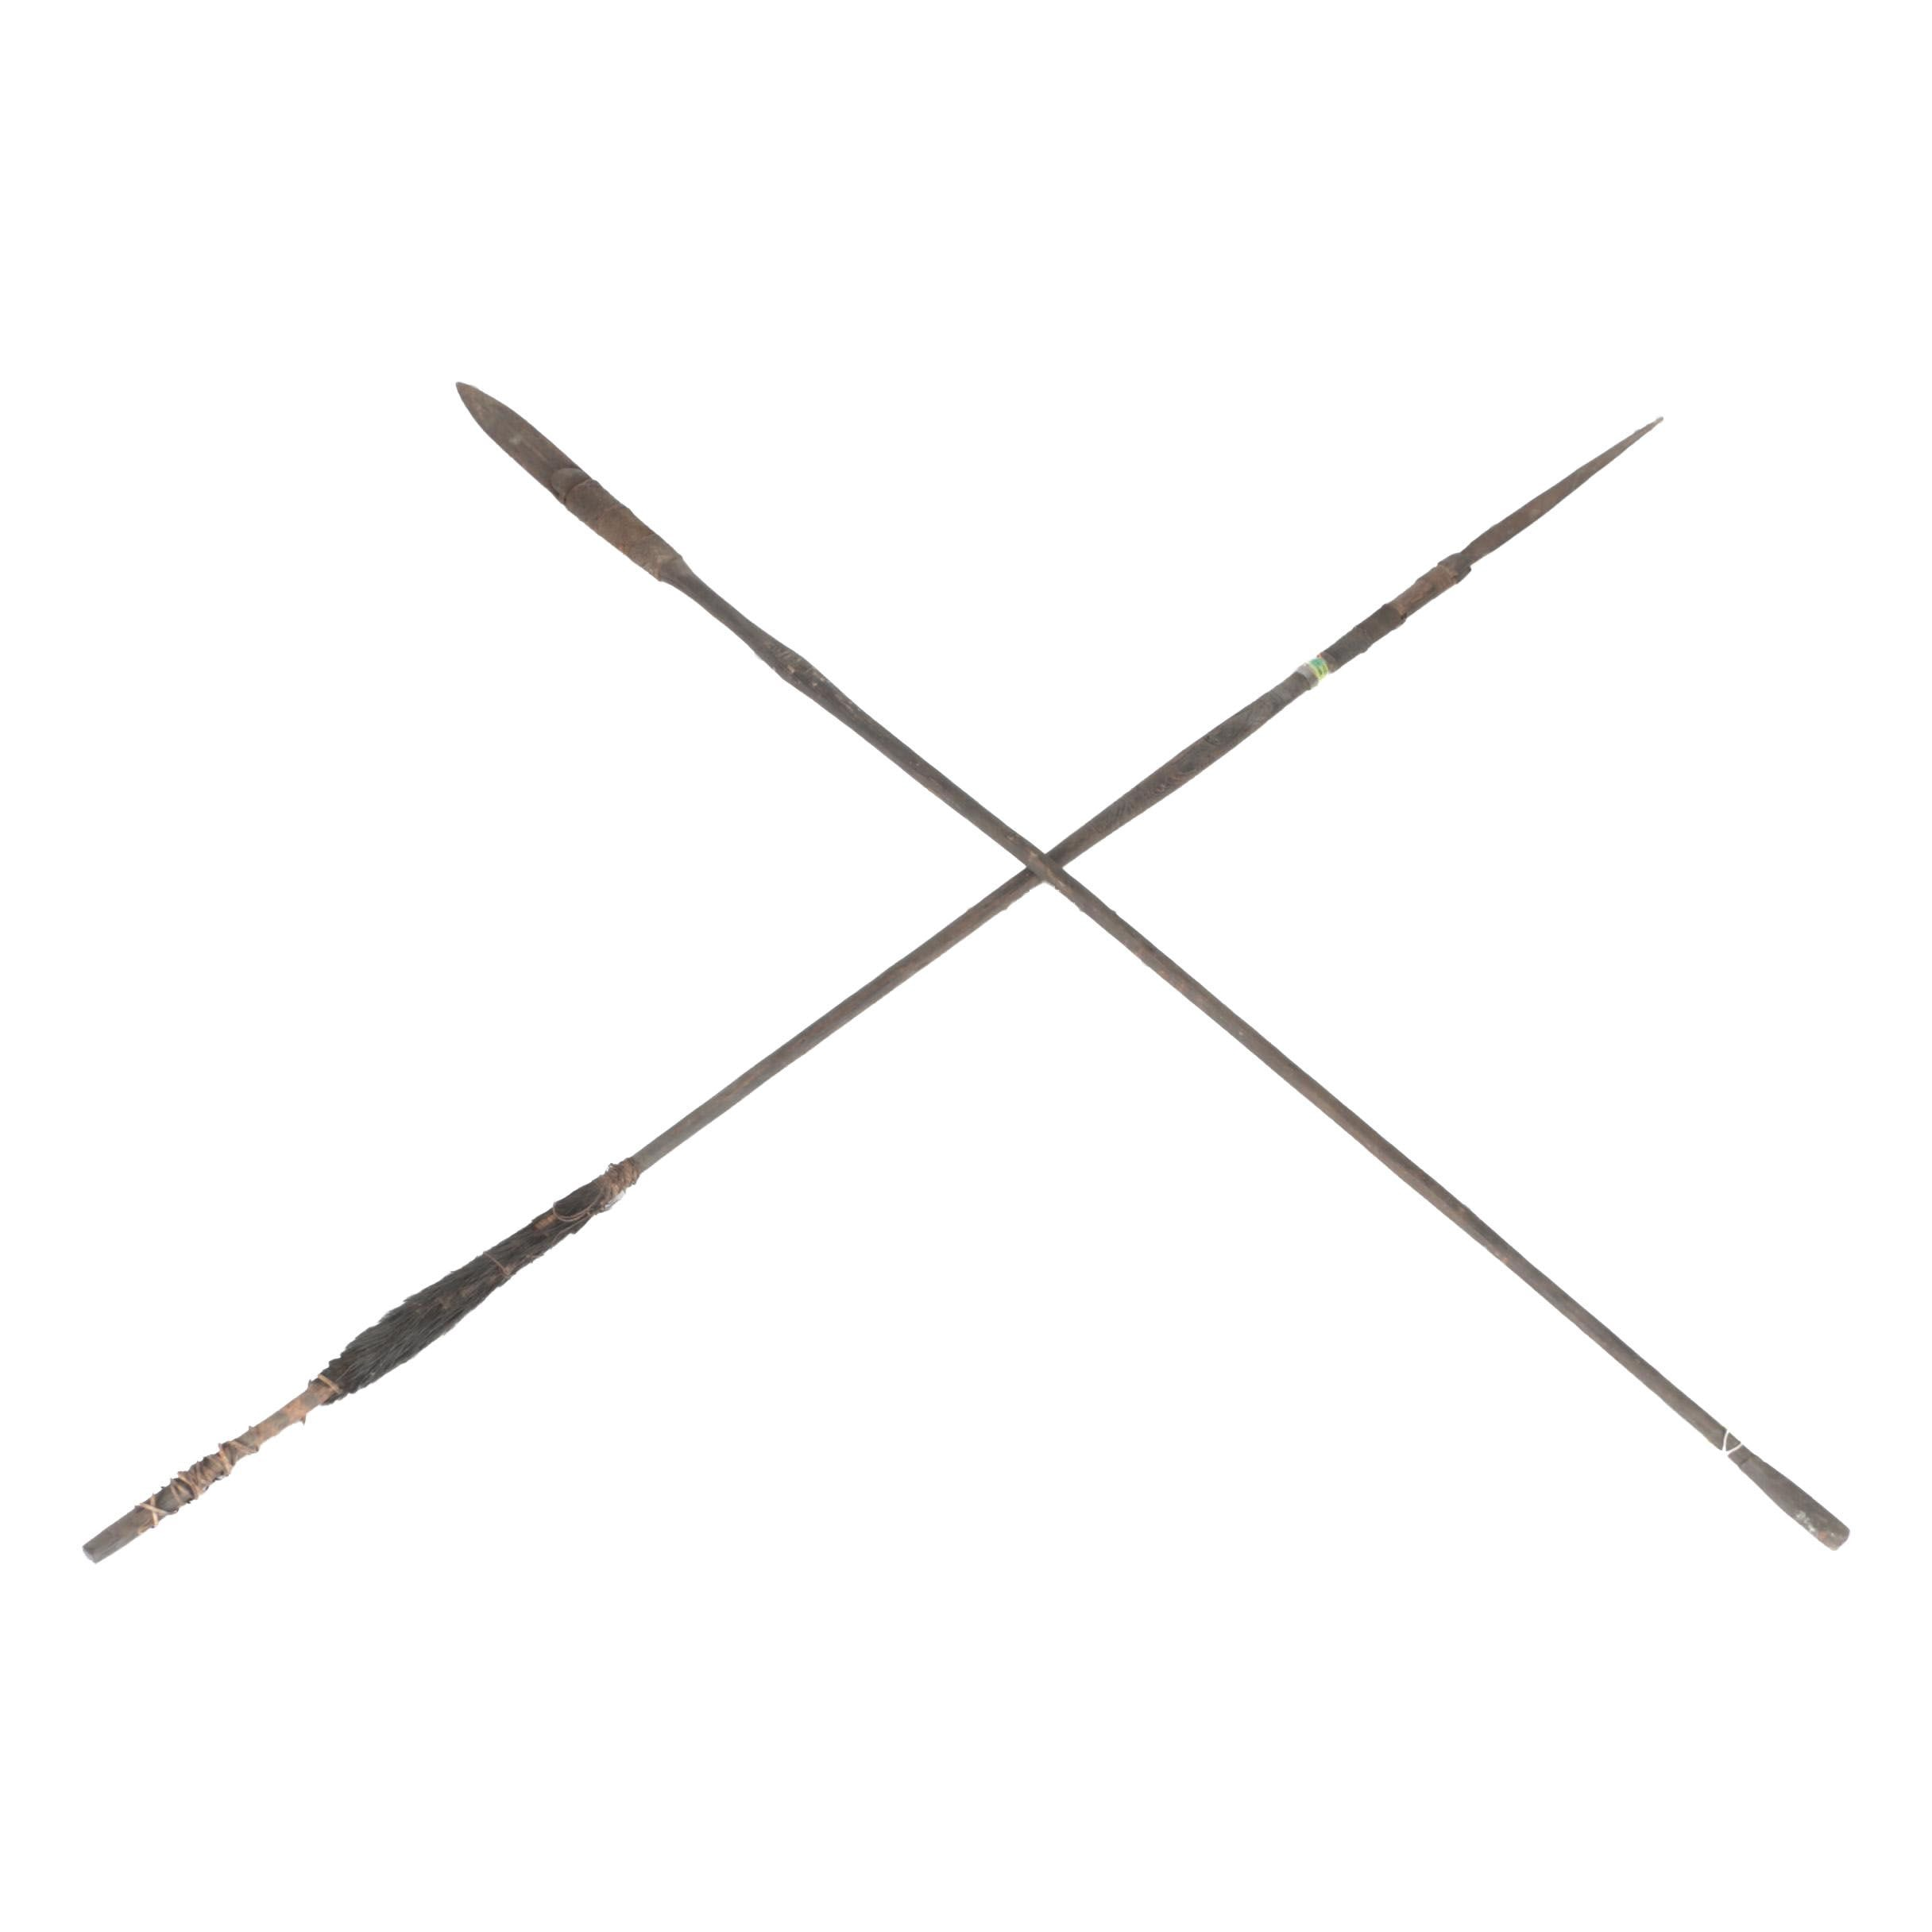 Pair of Papua New Guinean Spears